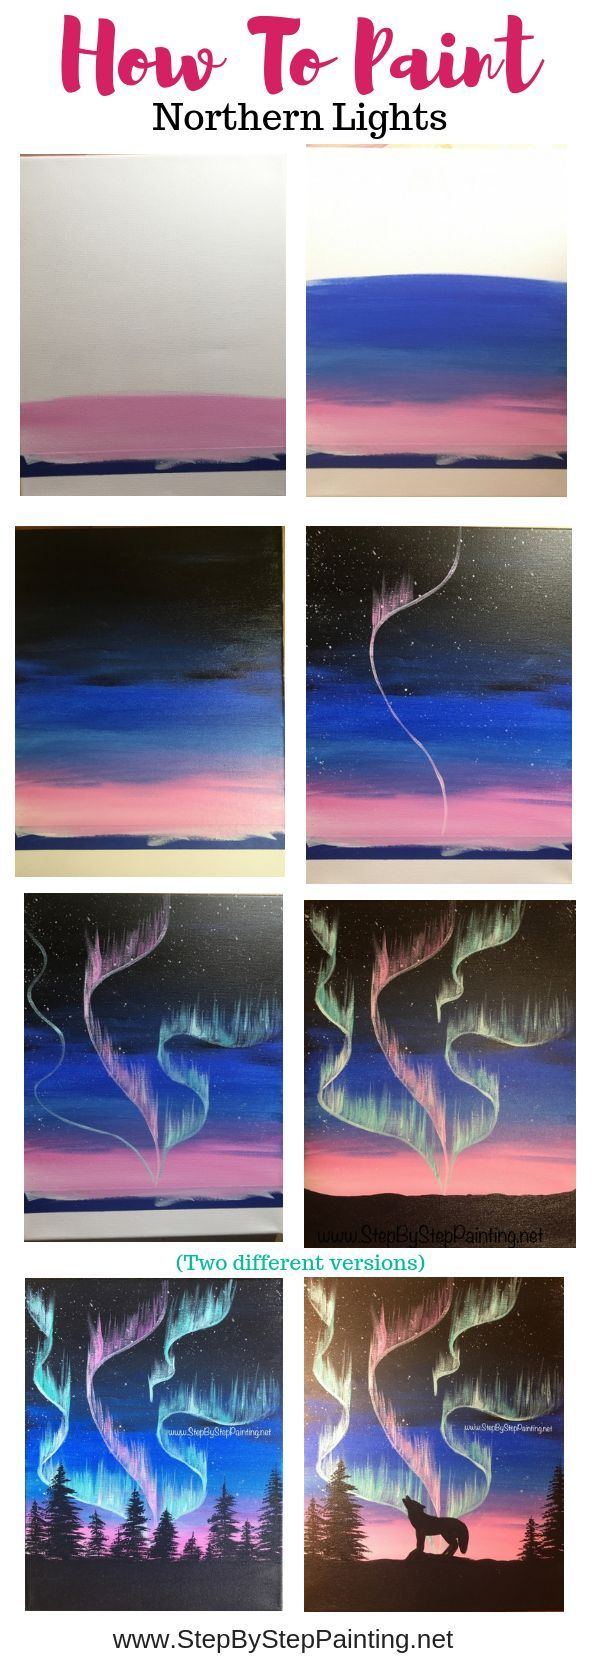 How to paint Northern Lights - Step By Step Painting